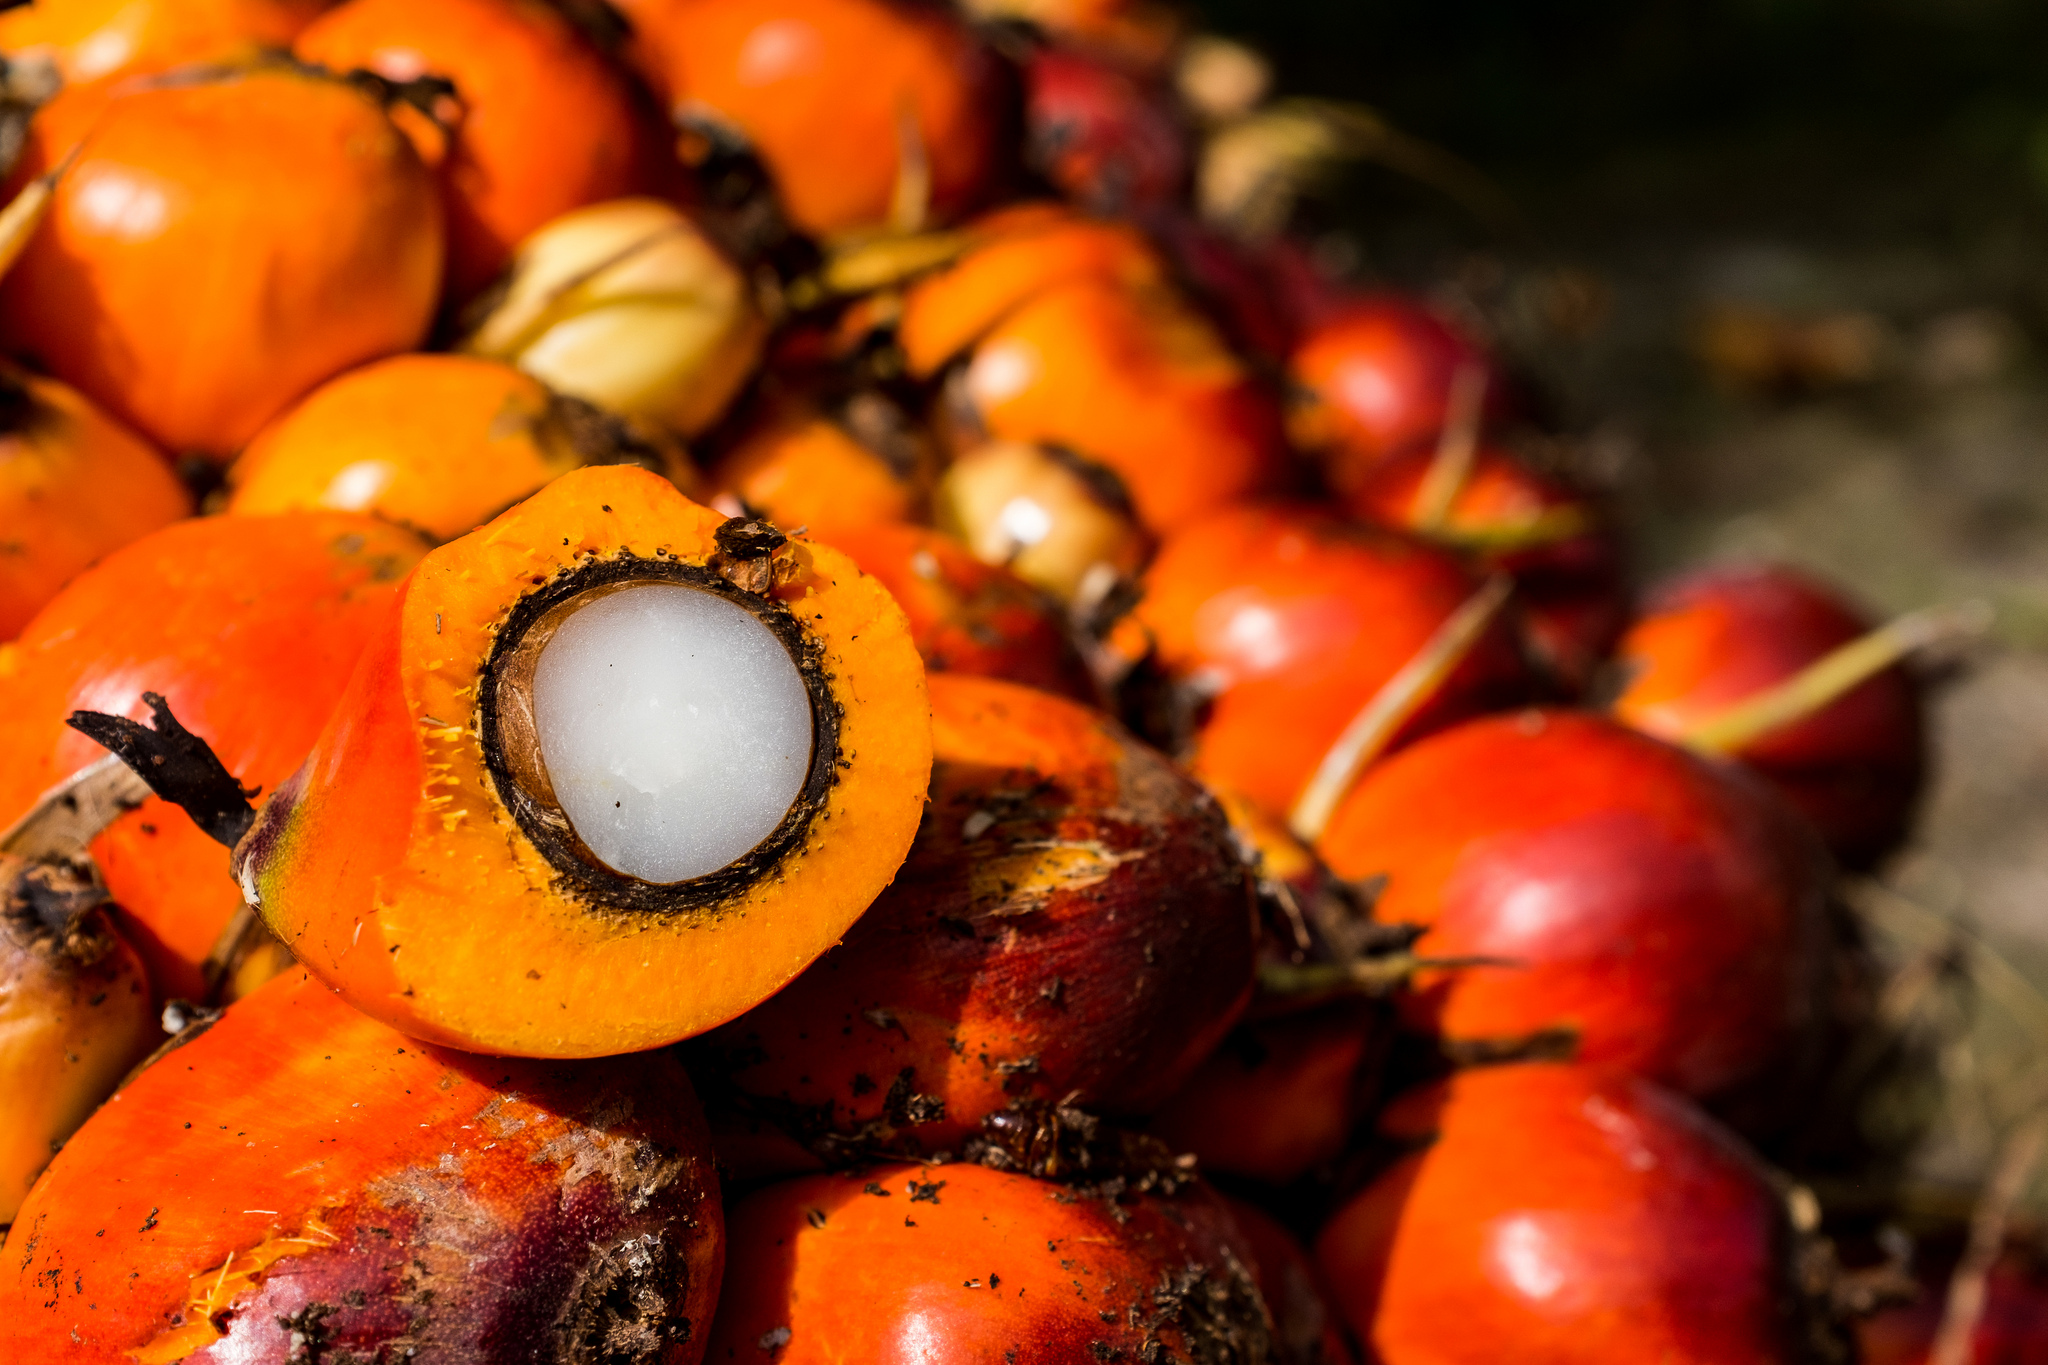 Turning down the heat in Indonesia's oil palm industry